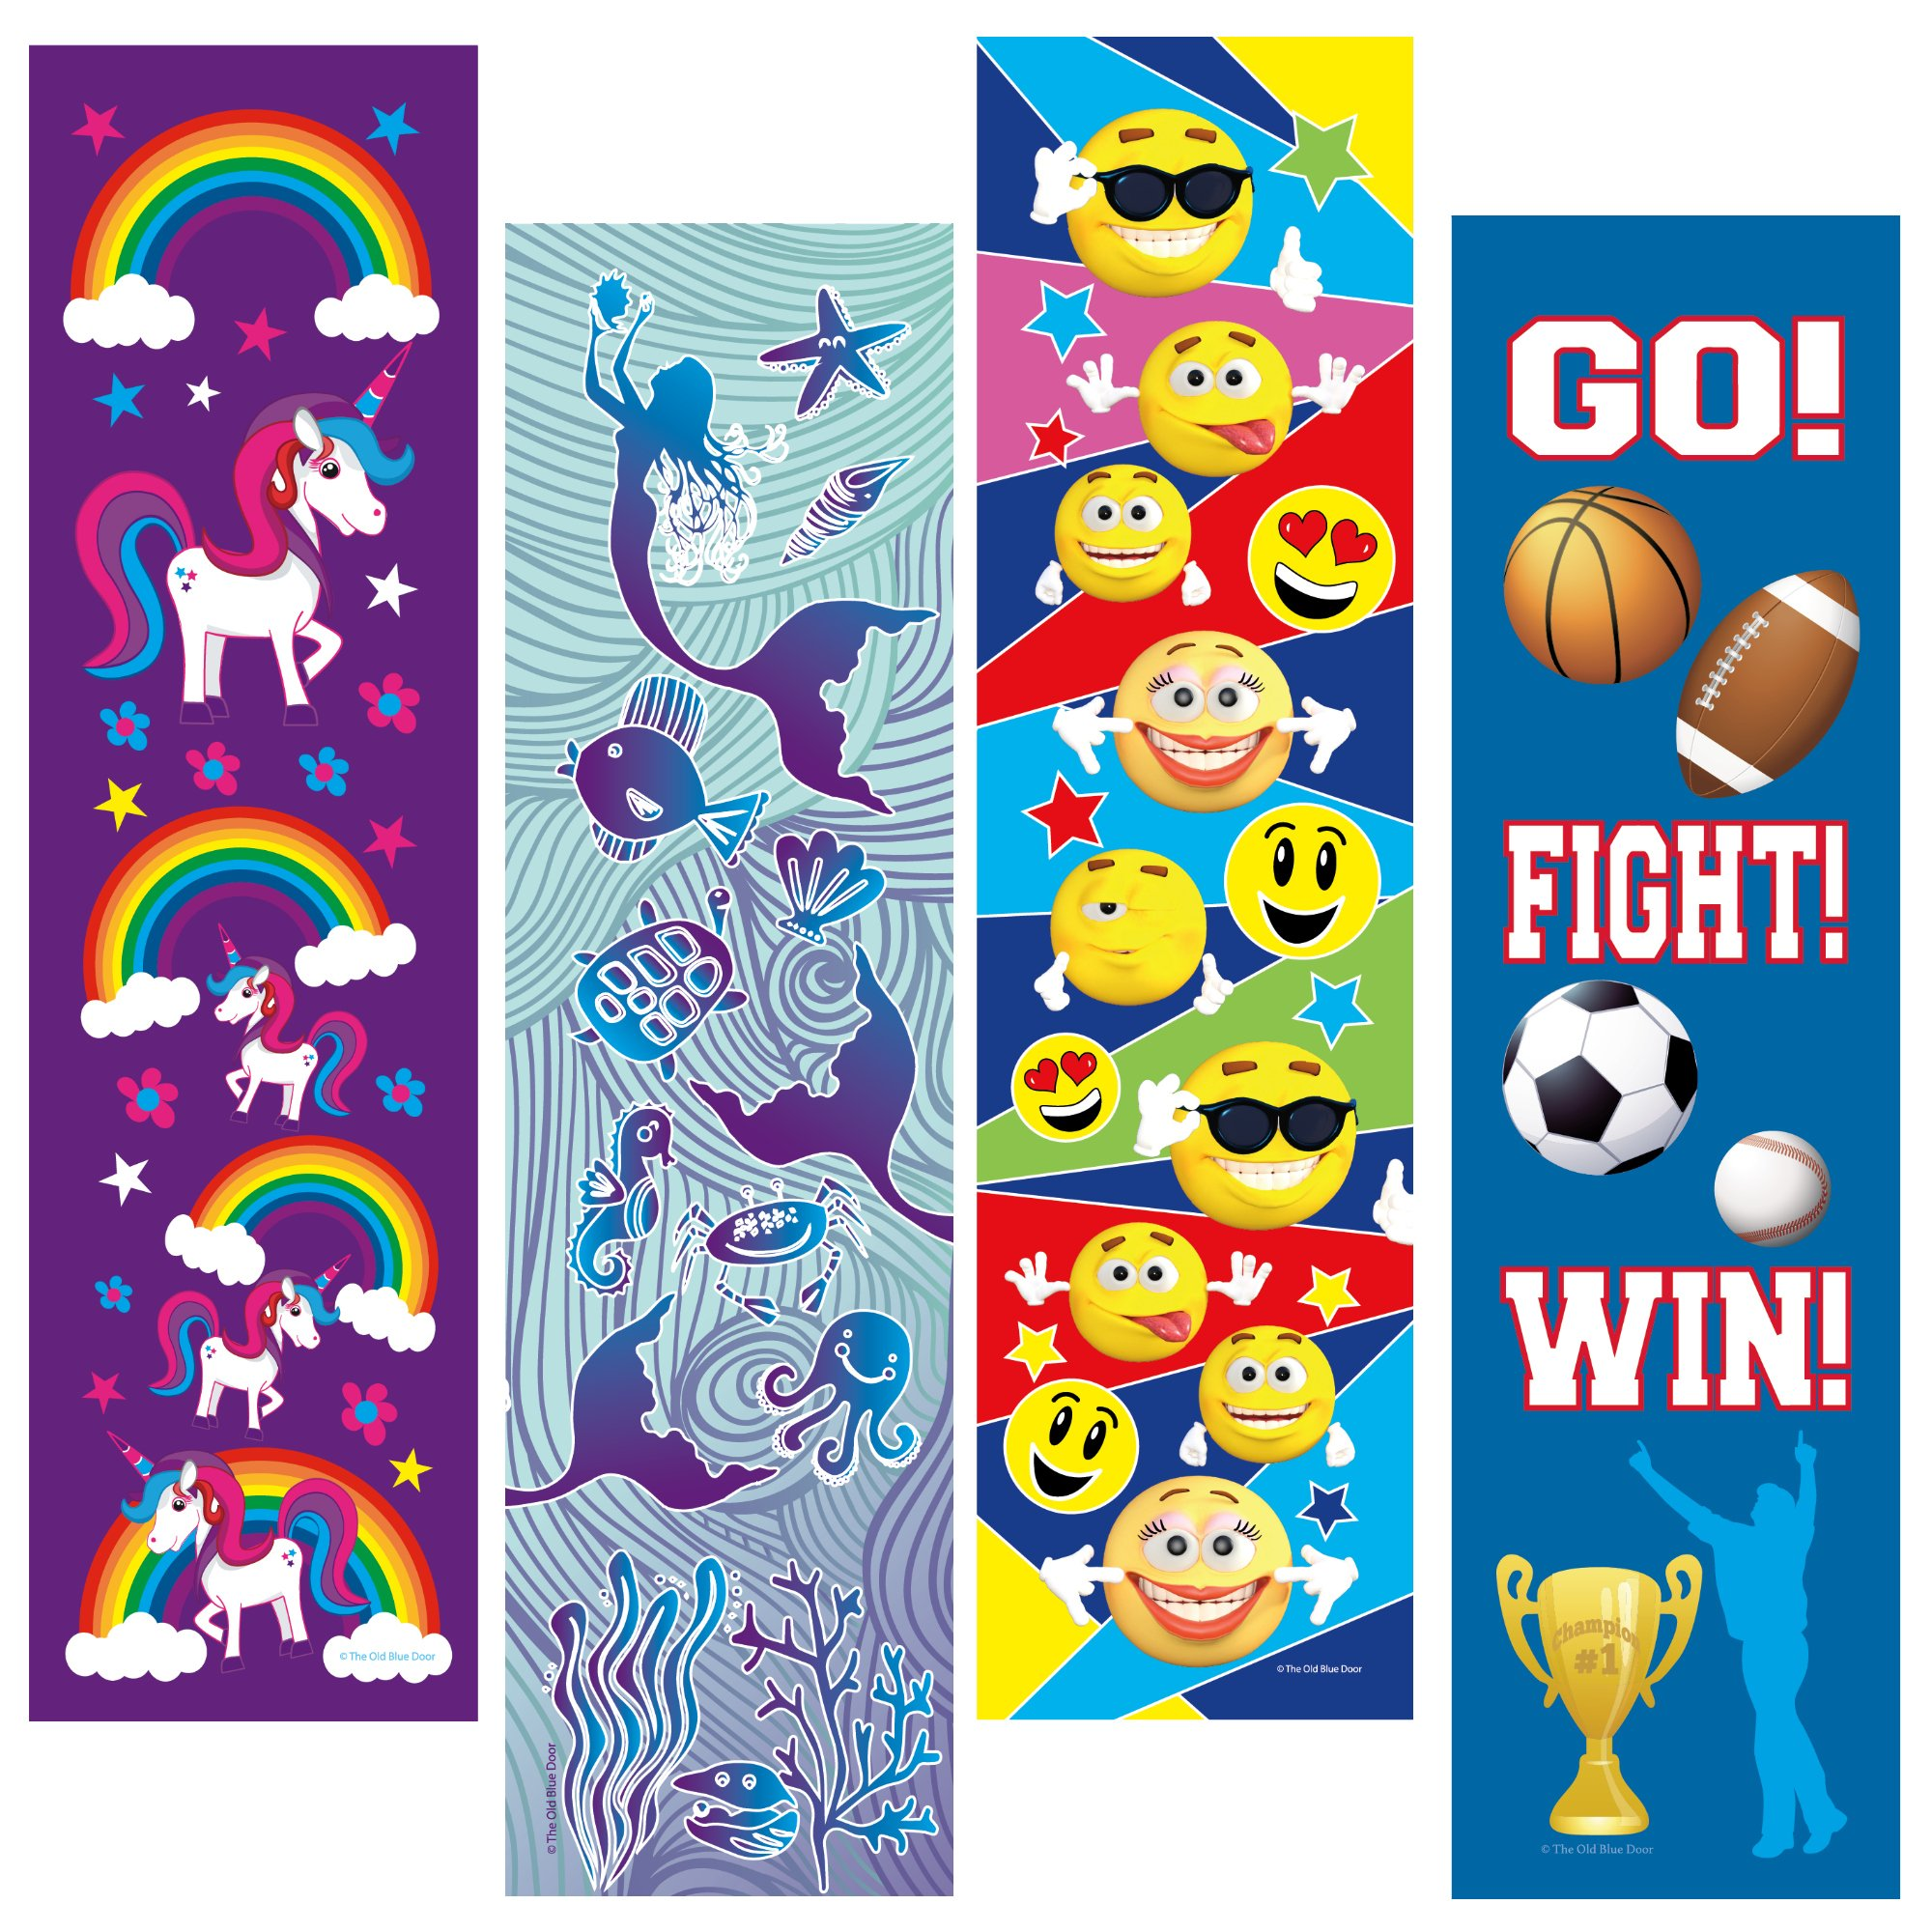 Kids Bookmarks Bulk Variety Pack - 48 Bookmarks Total (12 Mermaid, 12 Unicorn, 12 Emoticon, 12 Sports) - Birthday Party Favors - Student Prizes - Teacher Rewards - Reading Incentives - School Store